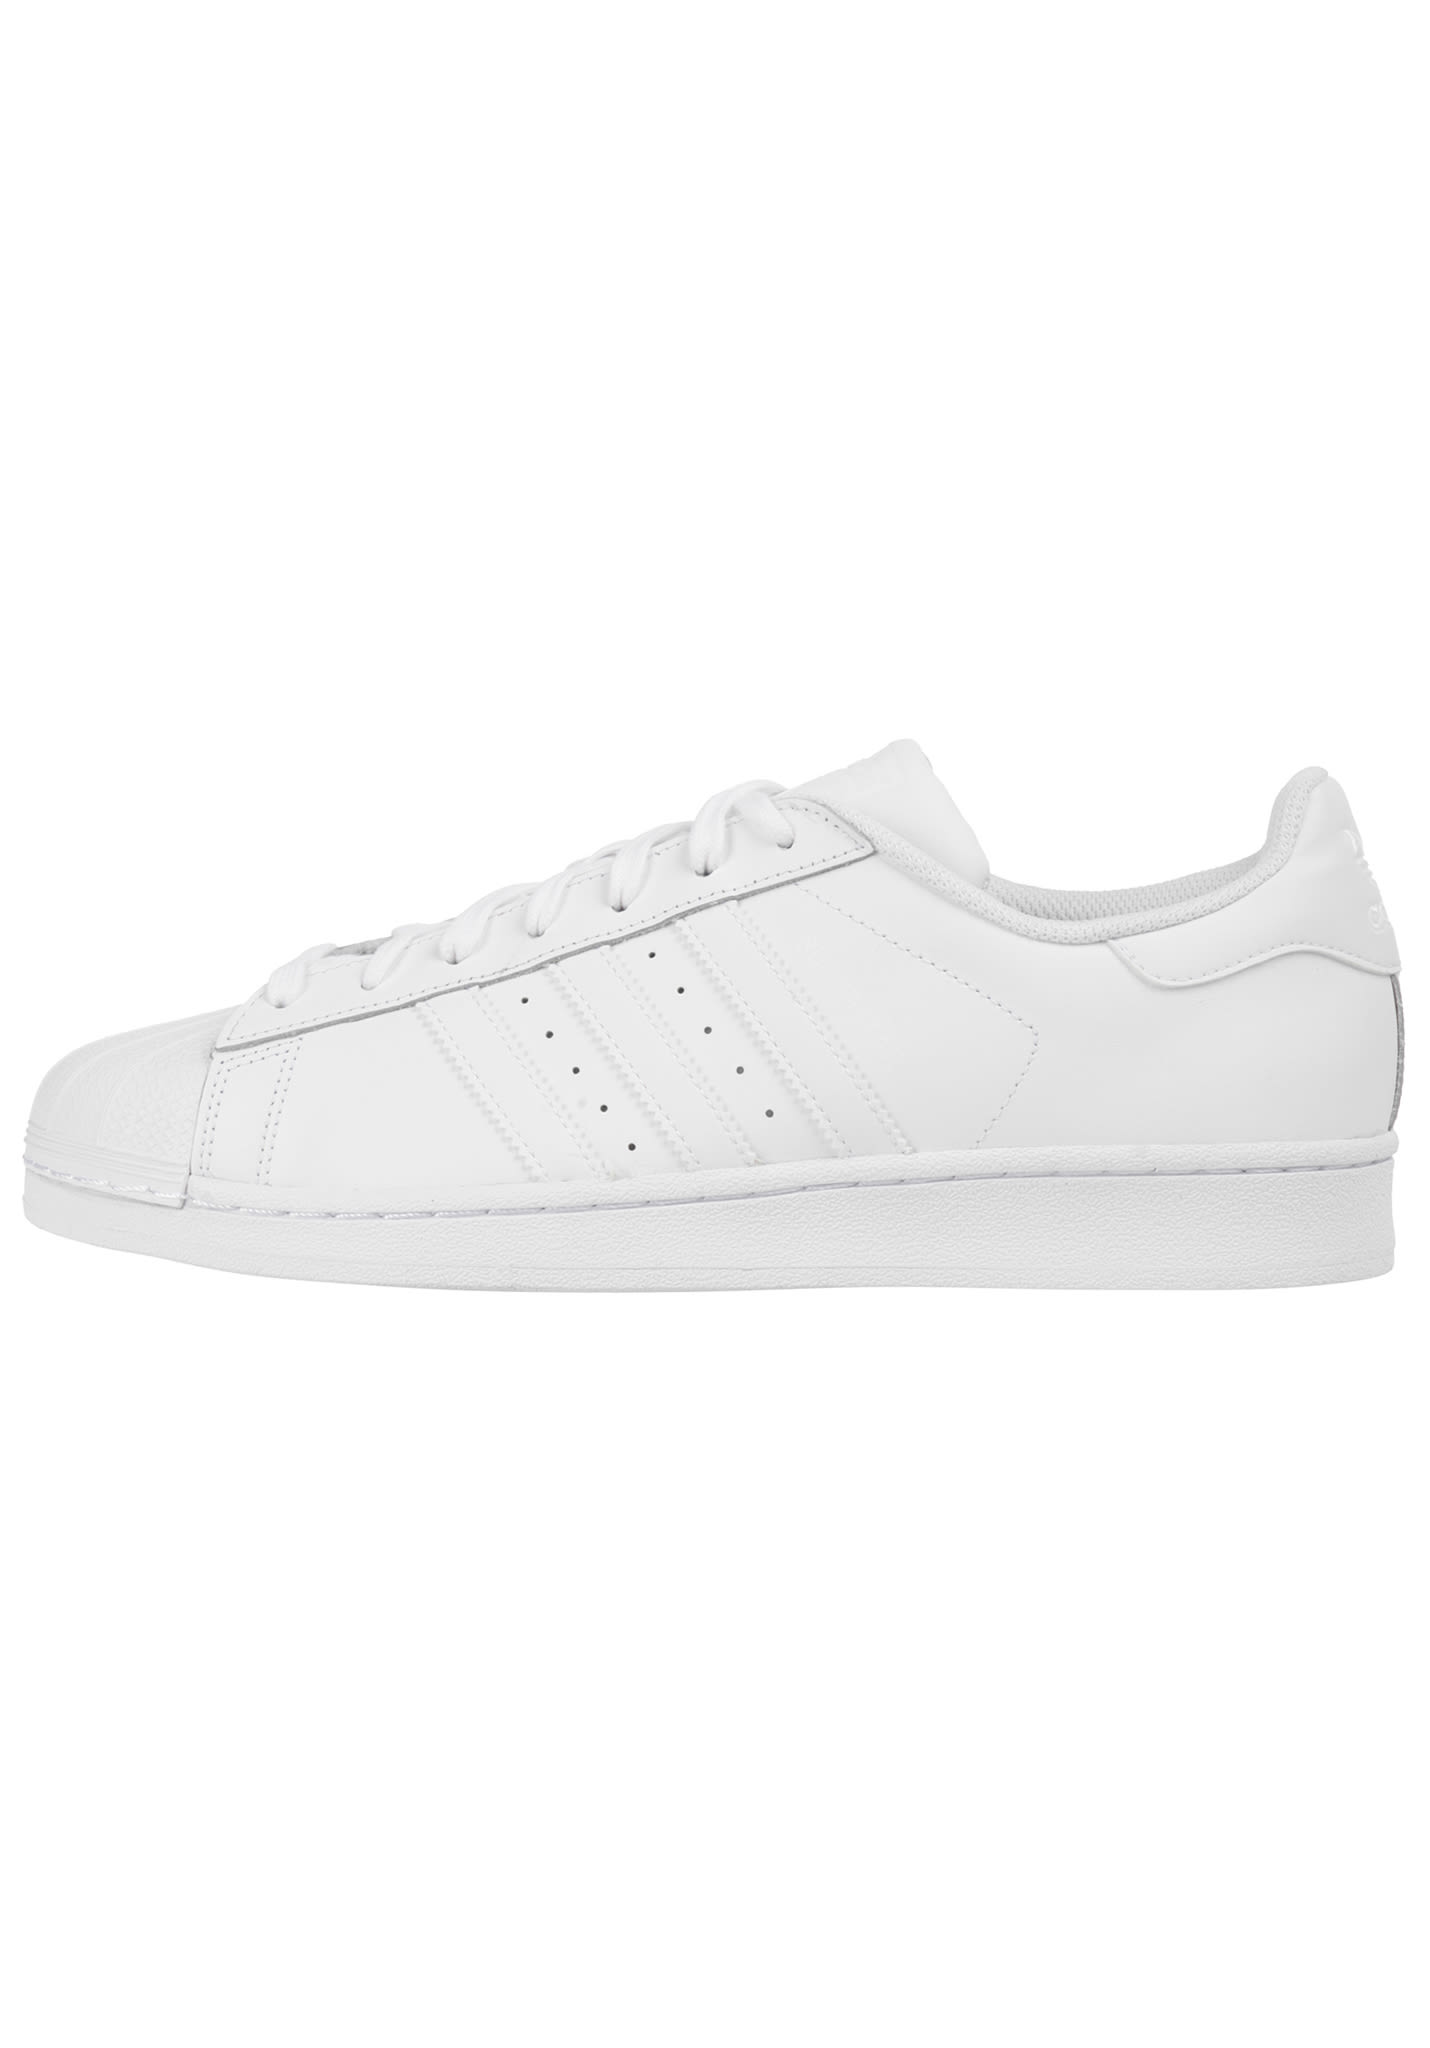 ADIDAS ORIGINALS Superstar Foundation - Sneakers - White - Planet Sports ef5a6ffc3